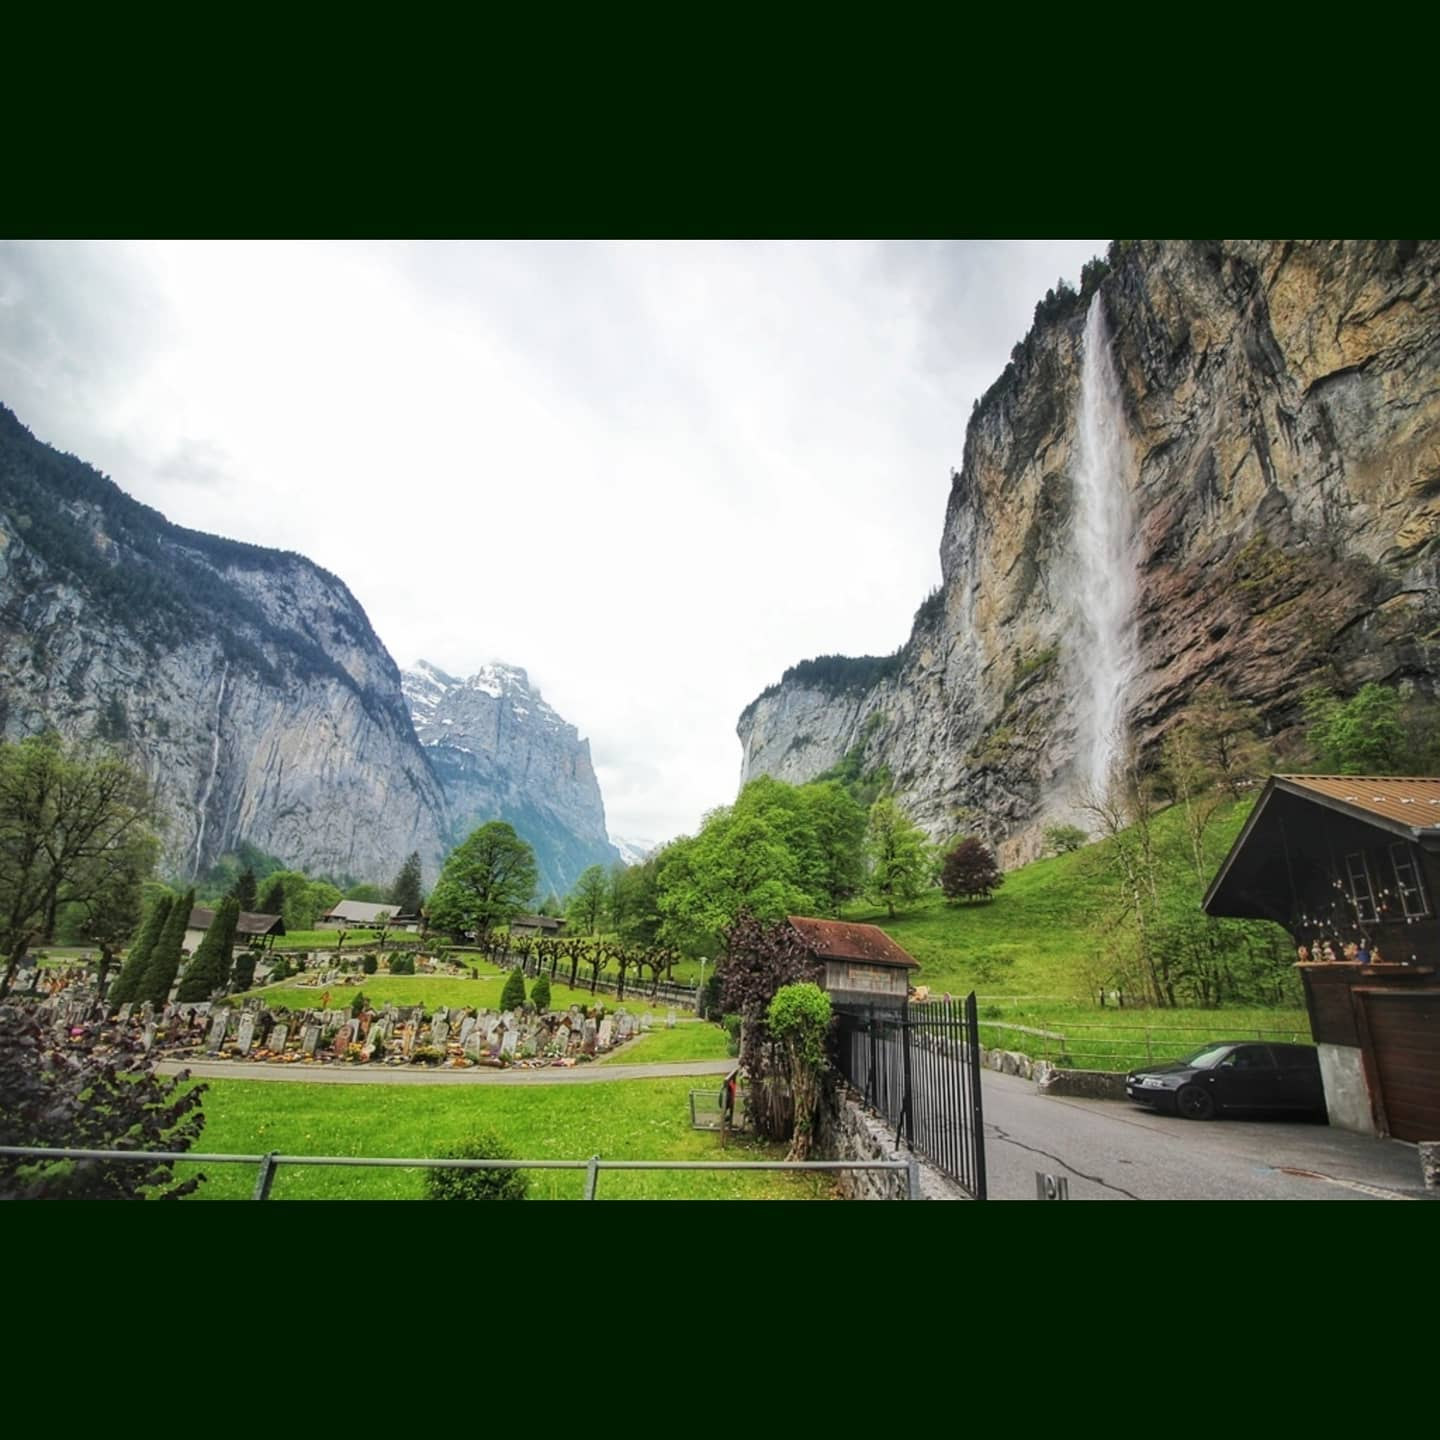 Heaven%20on%20Earth%20-%20Lauterbrunnen%2C%20Switzerland